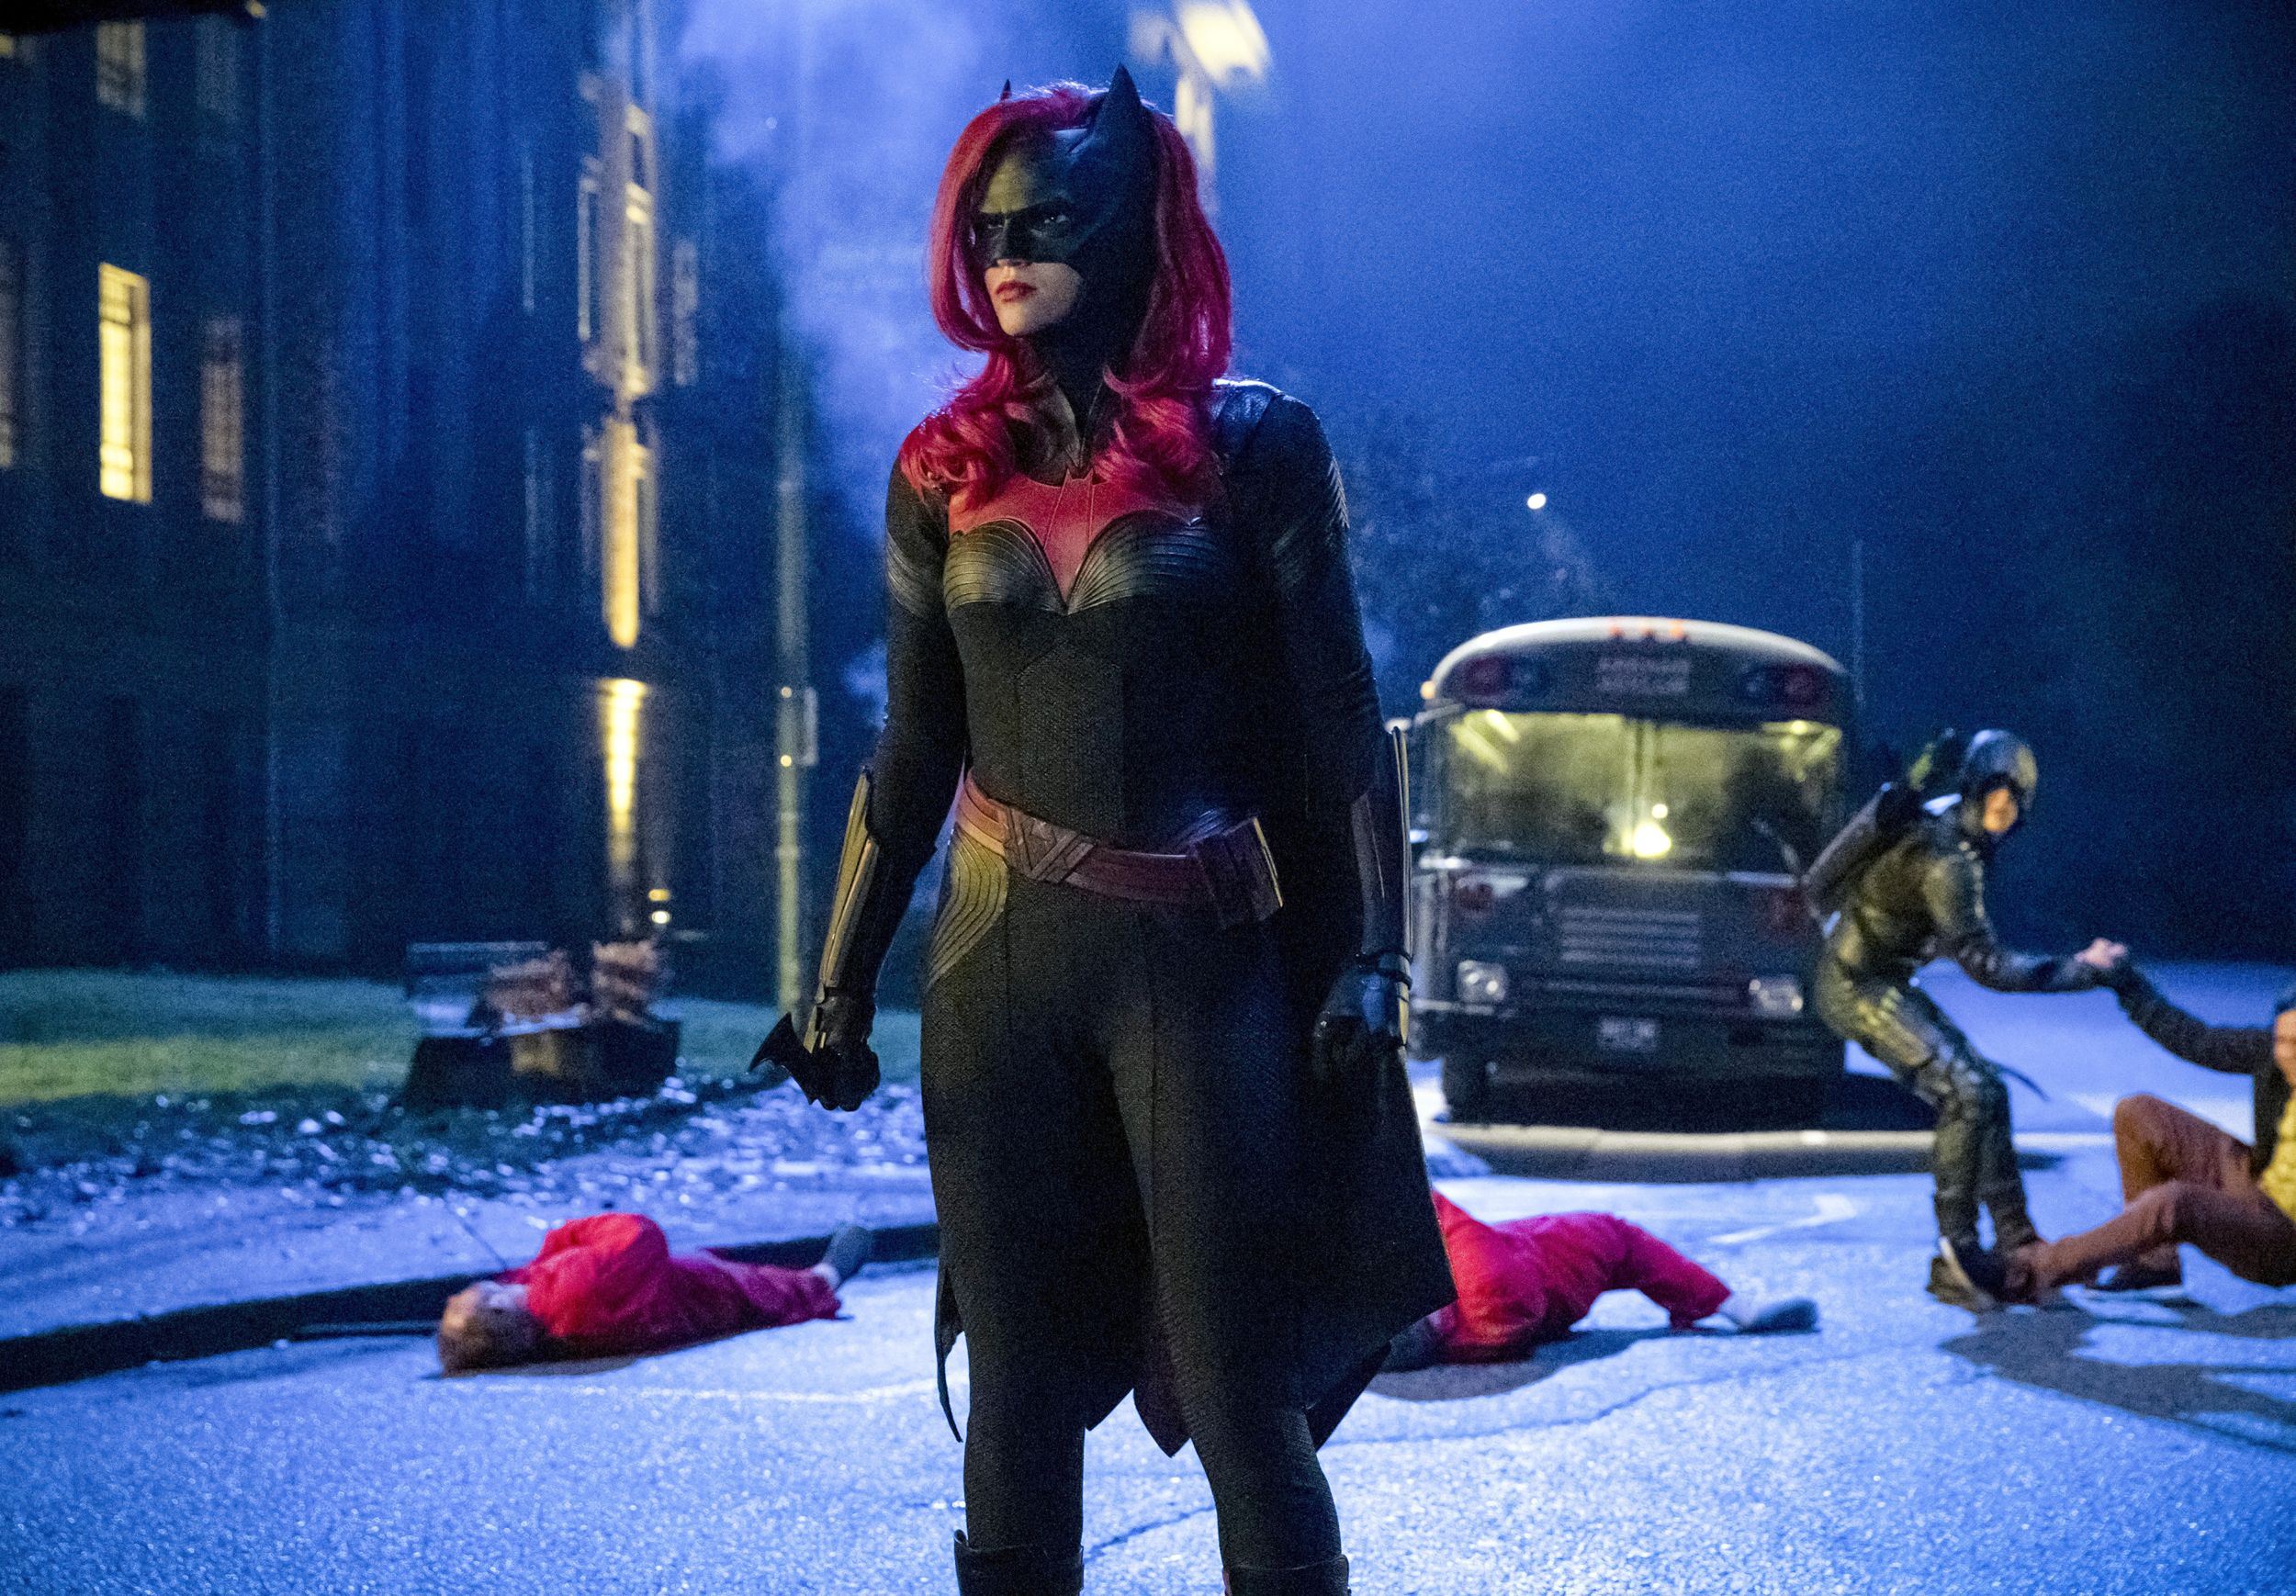 Batwoman's new girlfriend revealed in first look photos